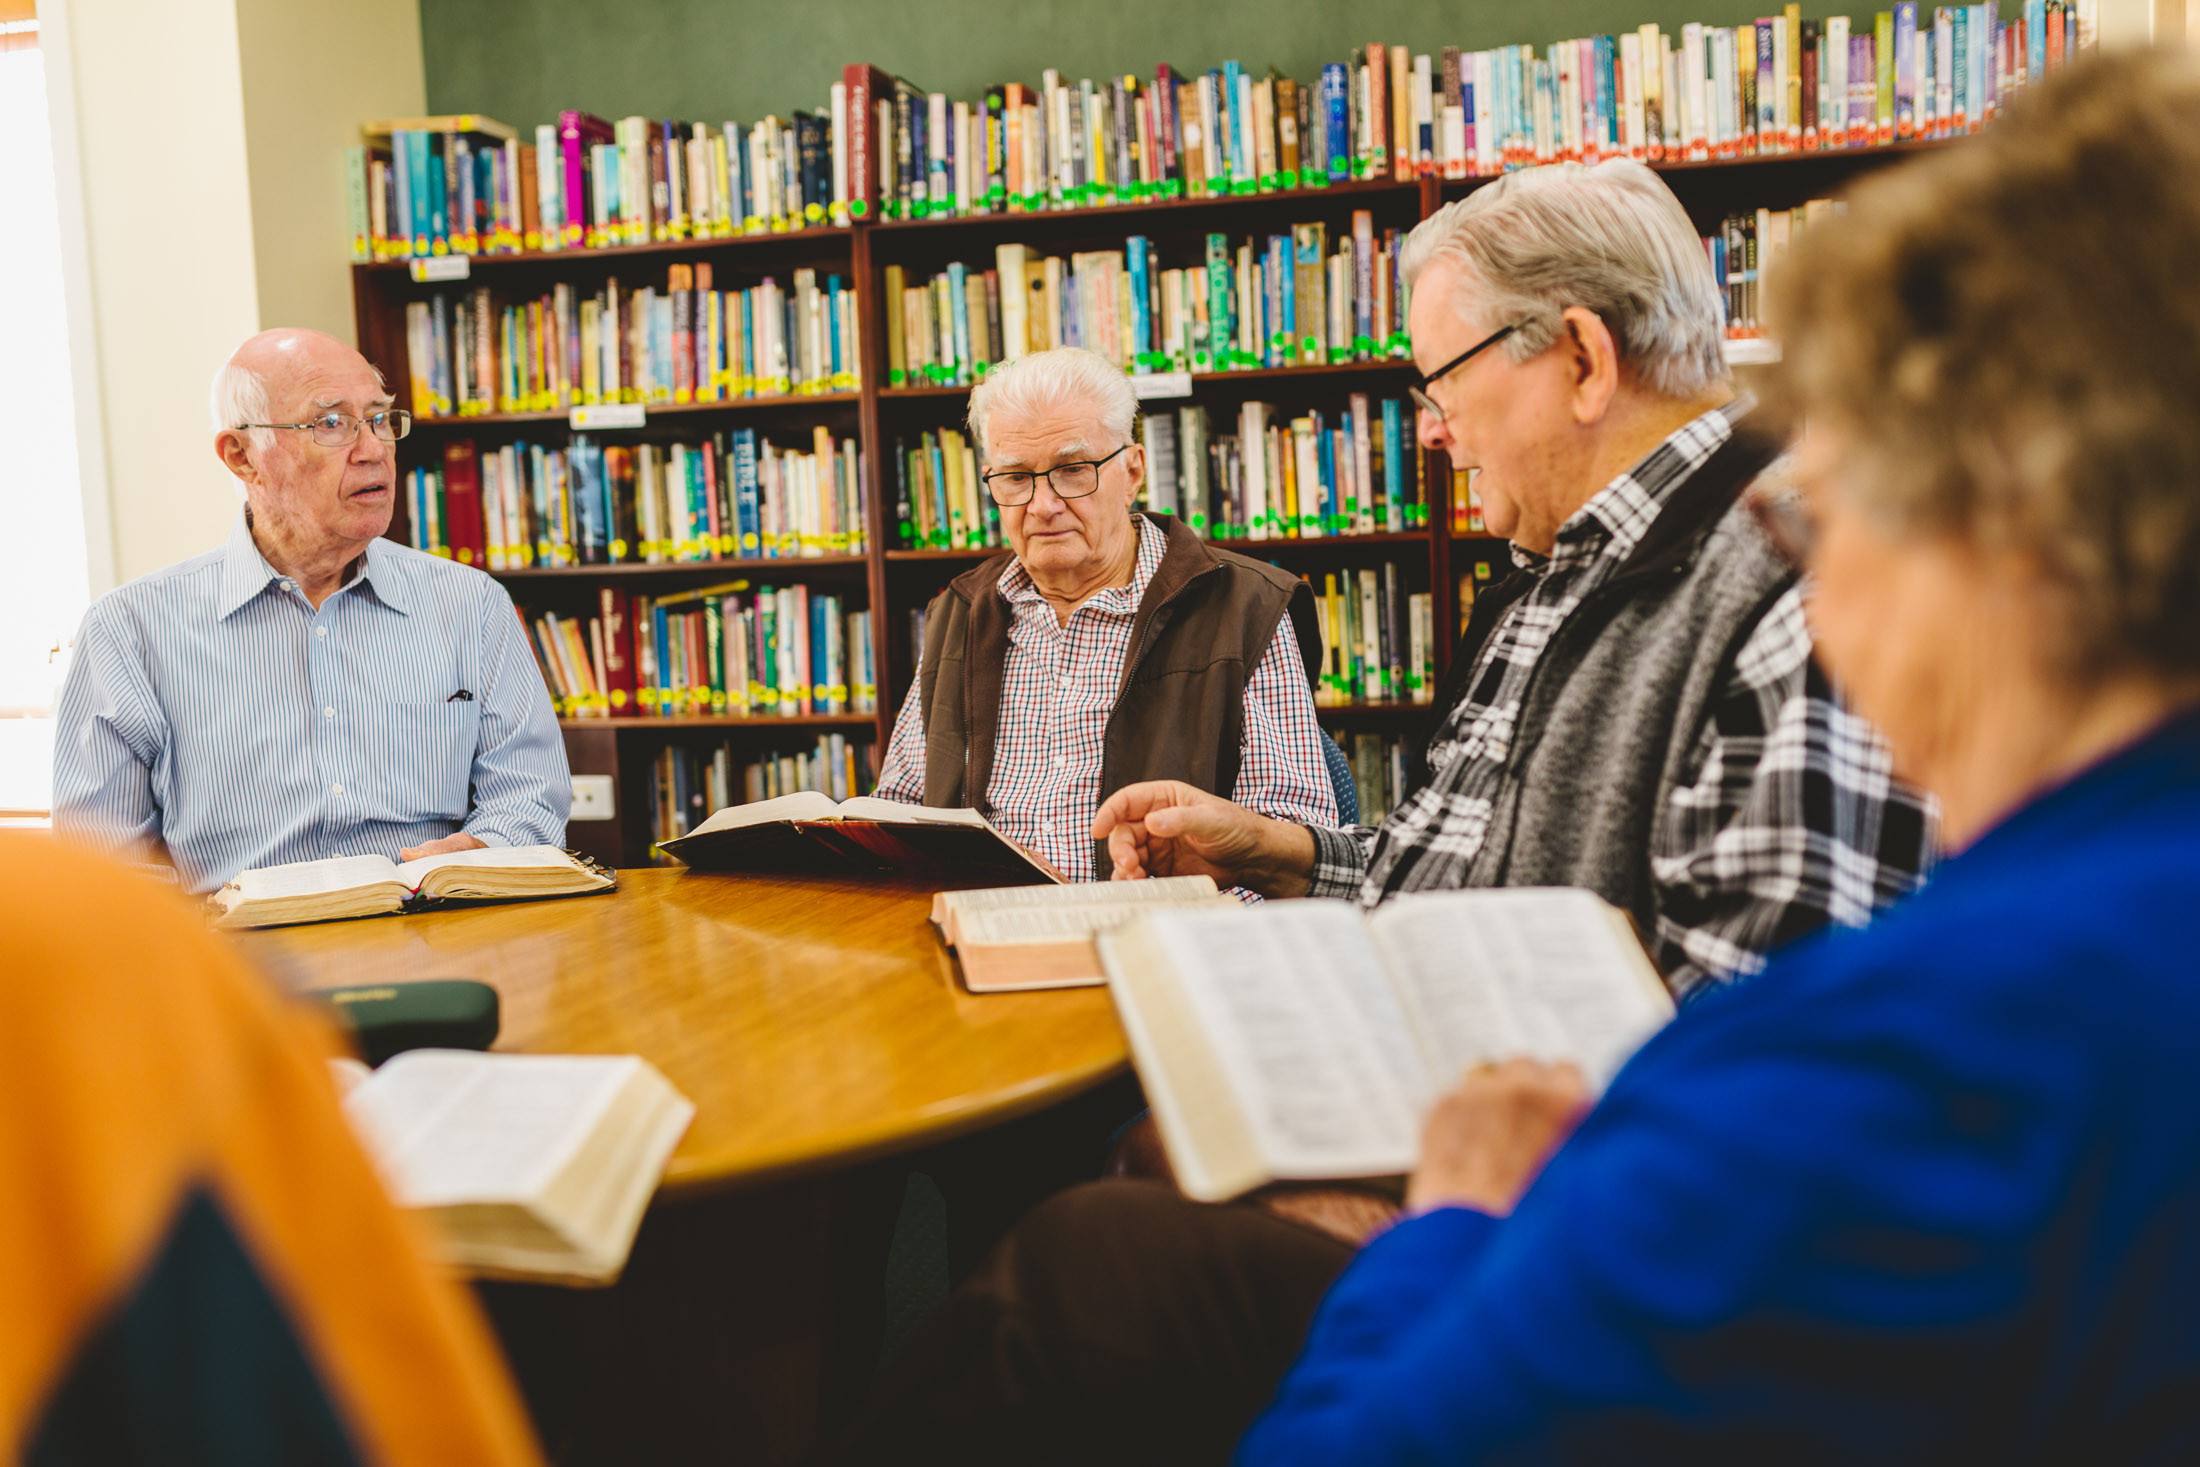 Library Bible study